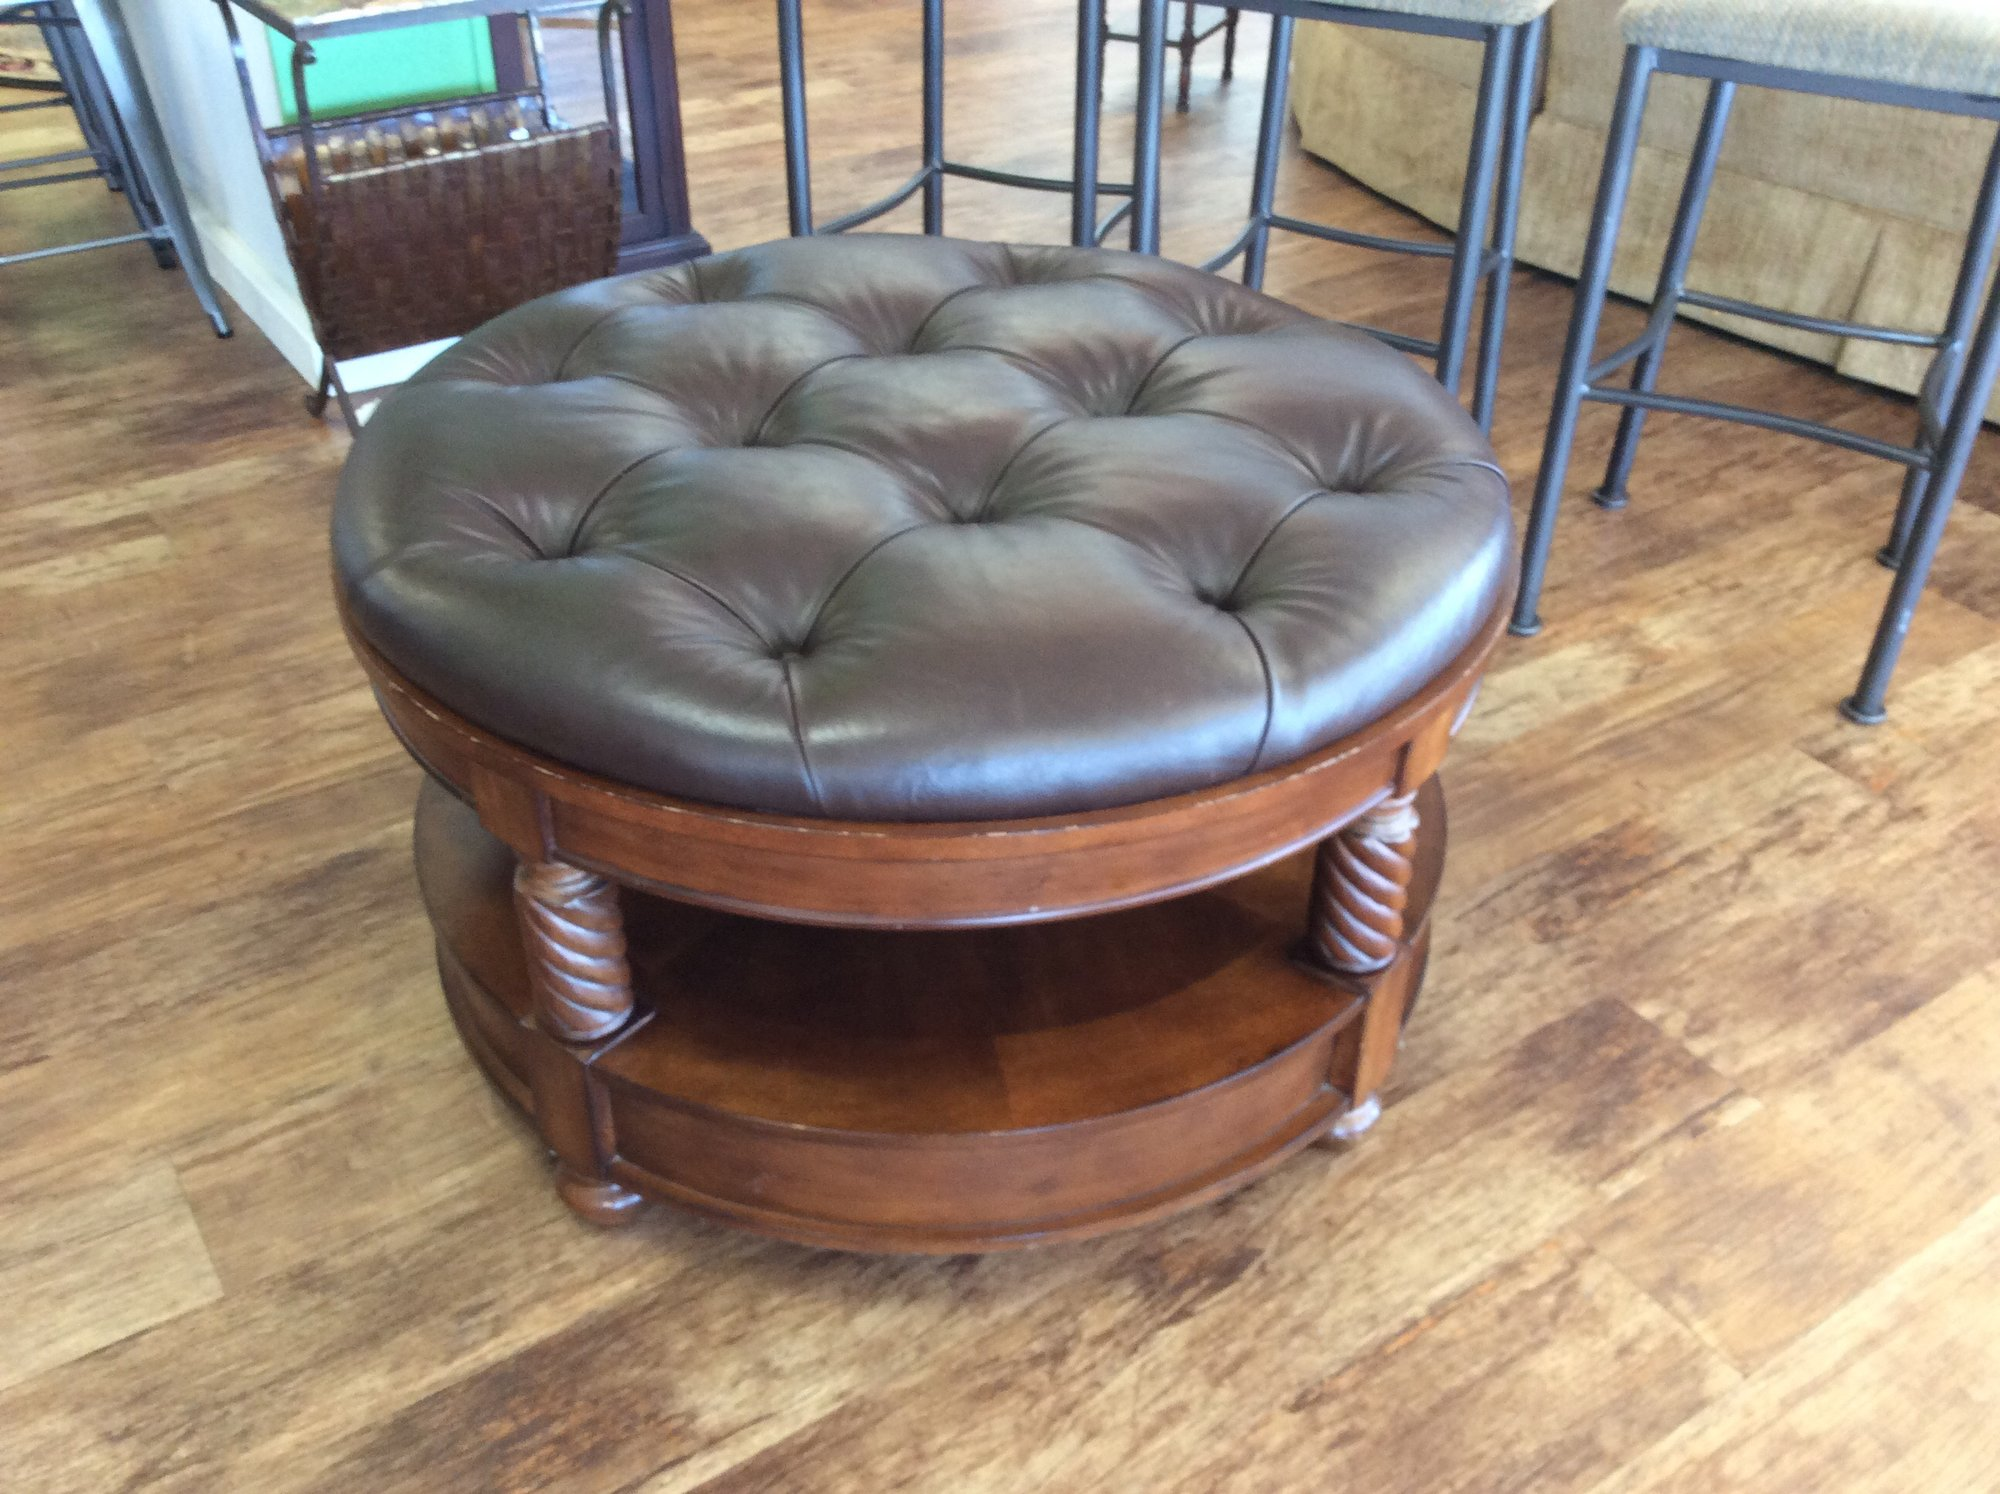 This handsome ottoman features a solid wood base with a cherry finish. There is single drawer at the bottom and a pull out tray near the top. The brown leather top is tufted, as well.